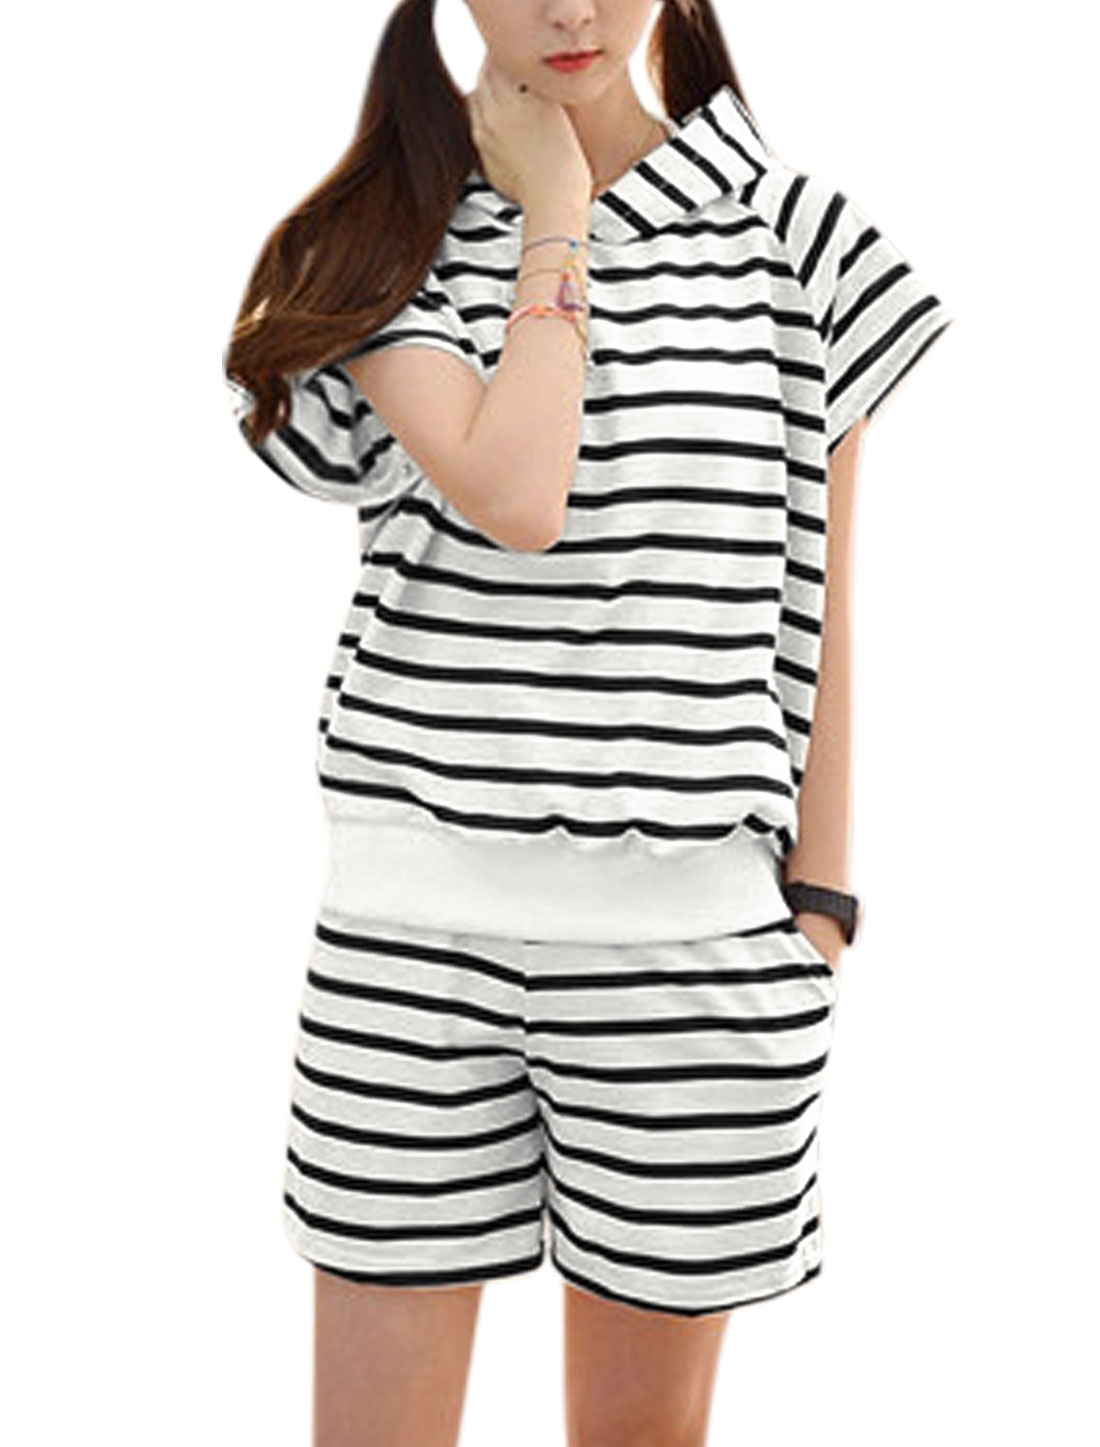 Woman Stripes Short Sleeves Hooded Top w Elastic Waist Shorts Sets Black White XS